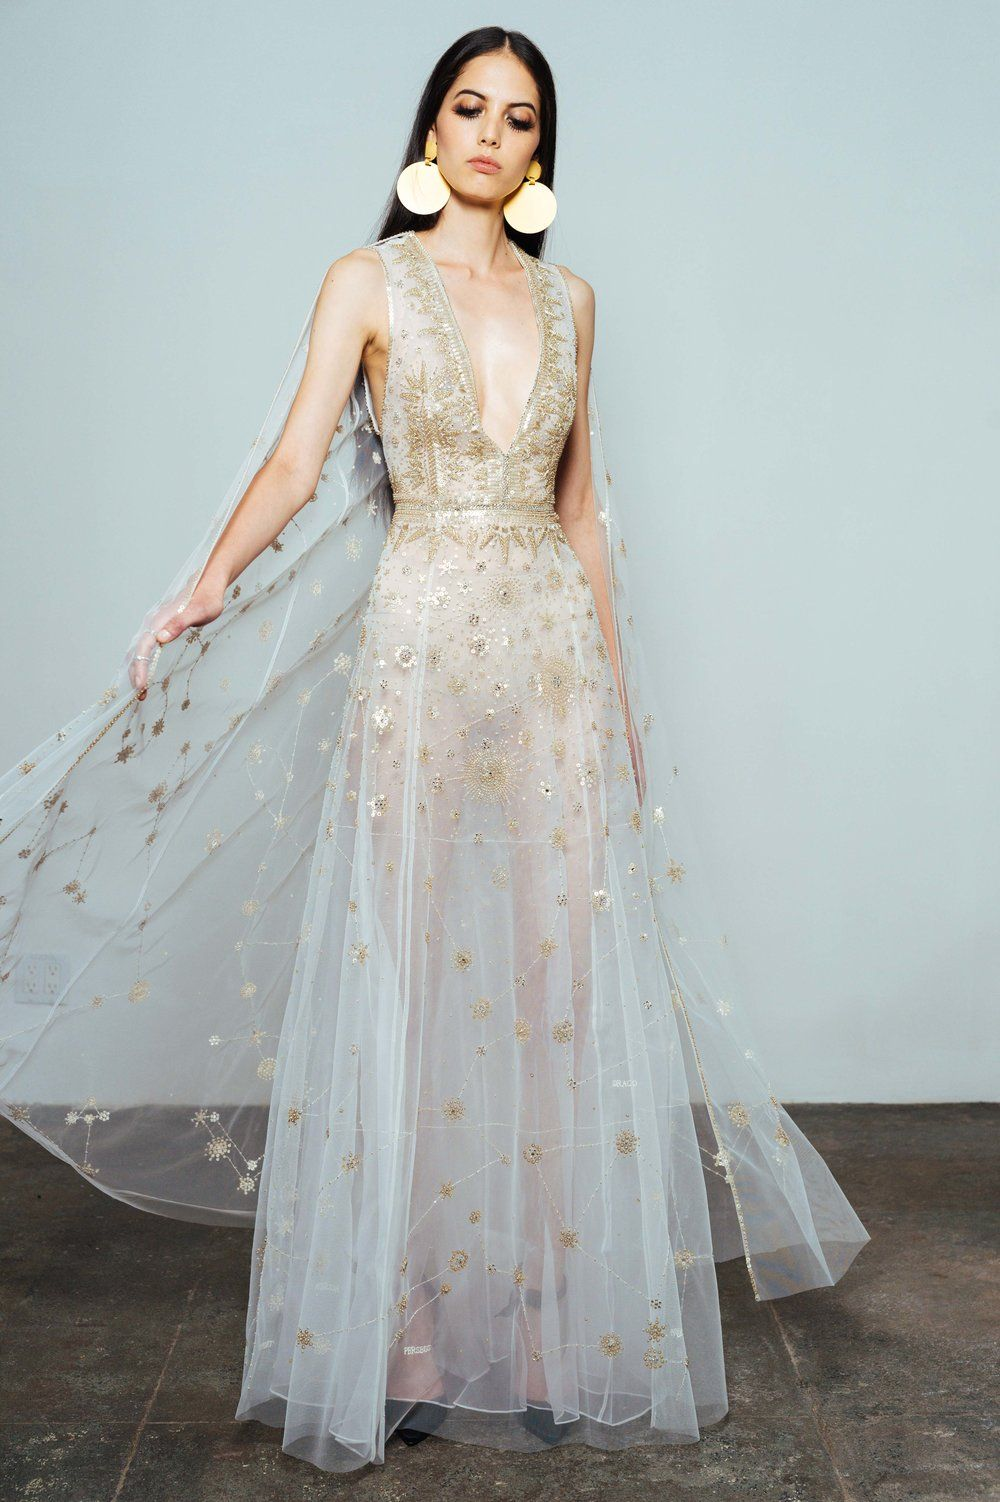 Photo of Unusual wedding dresses for the non-traditional bride